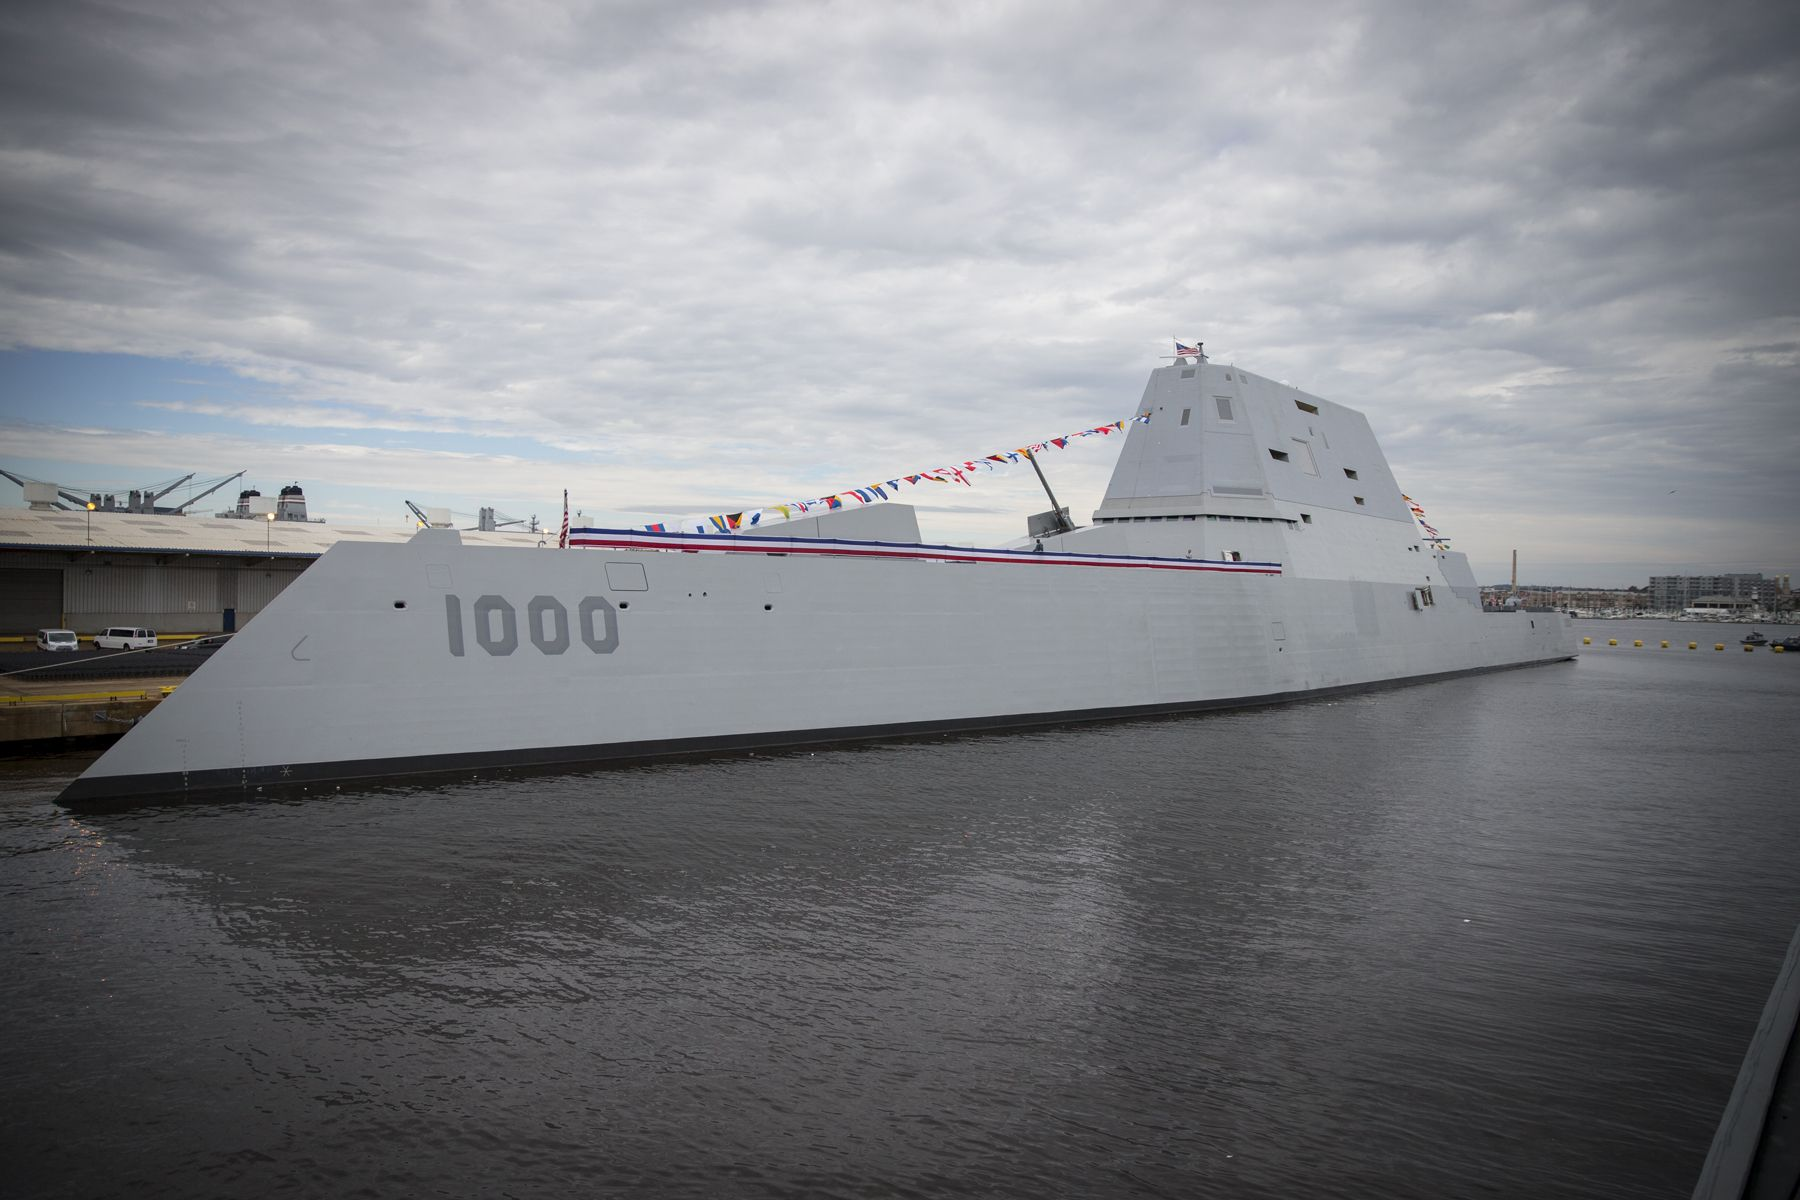 BALTIMORE (Oct. 13, 2016) The future Zumwalt-class guided-missile destroyer USS Zumwalt (DDG 1000) is pierside at Canton Port Services in preparation for its upcoming commissioning on Oct. 15, 2016. Zumwalt is named for former Chief of Naval Operations Elmo R. Zumwalt and is the first in a three-ship class of the Navy's newest, most technologically advanced multi-mission guided-missile destroyers. (U.S. Navy photo by Petty Officer 2nd Class George M. Bell/Released)